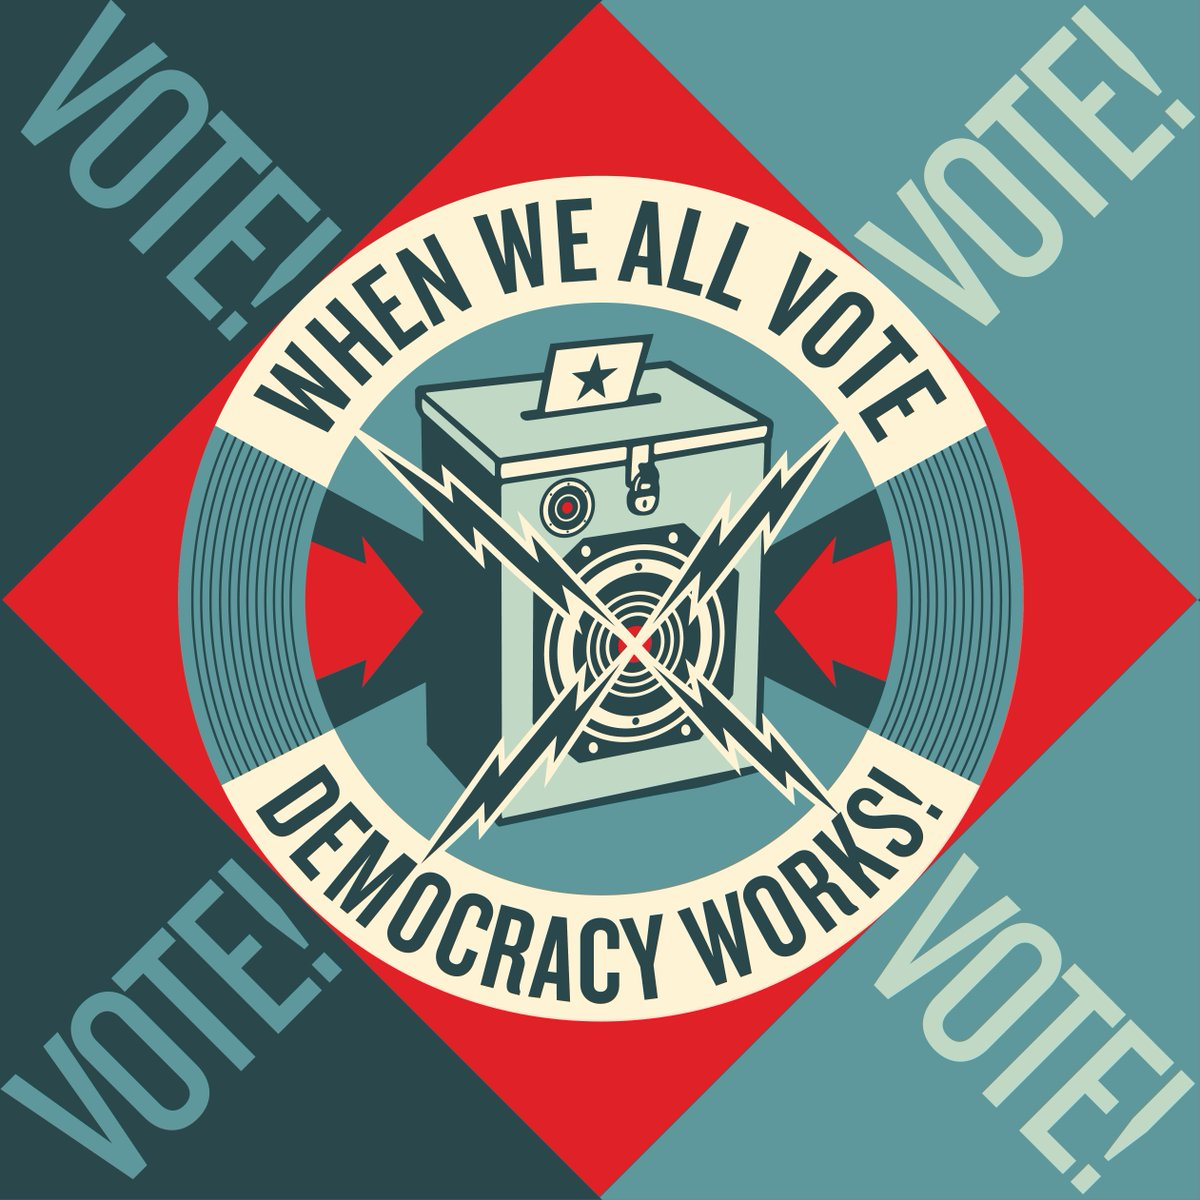 I'm proud to work with @whenweallvote to amplify the message of voting! Go to: https://t.co/cZrrO2b2Yg -S https://t.co/vOstvEk7w1